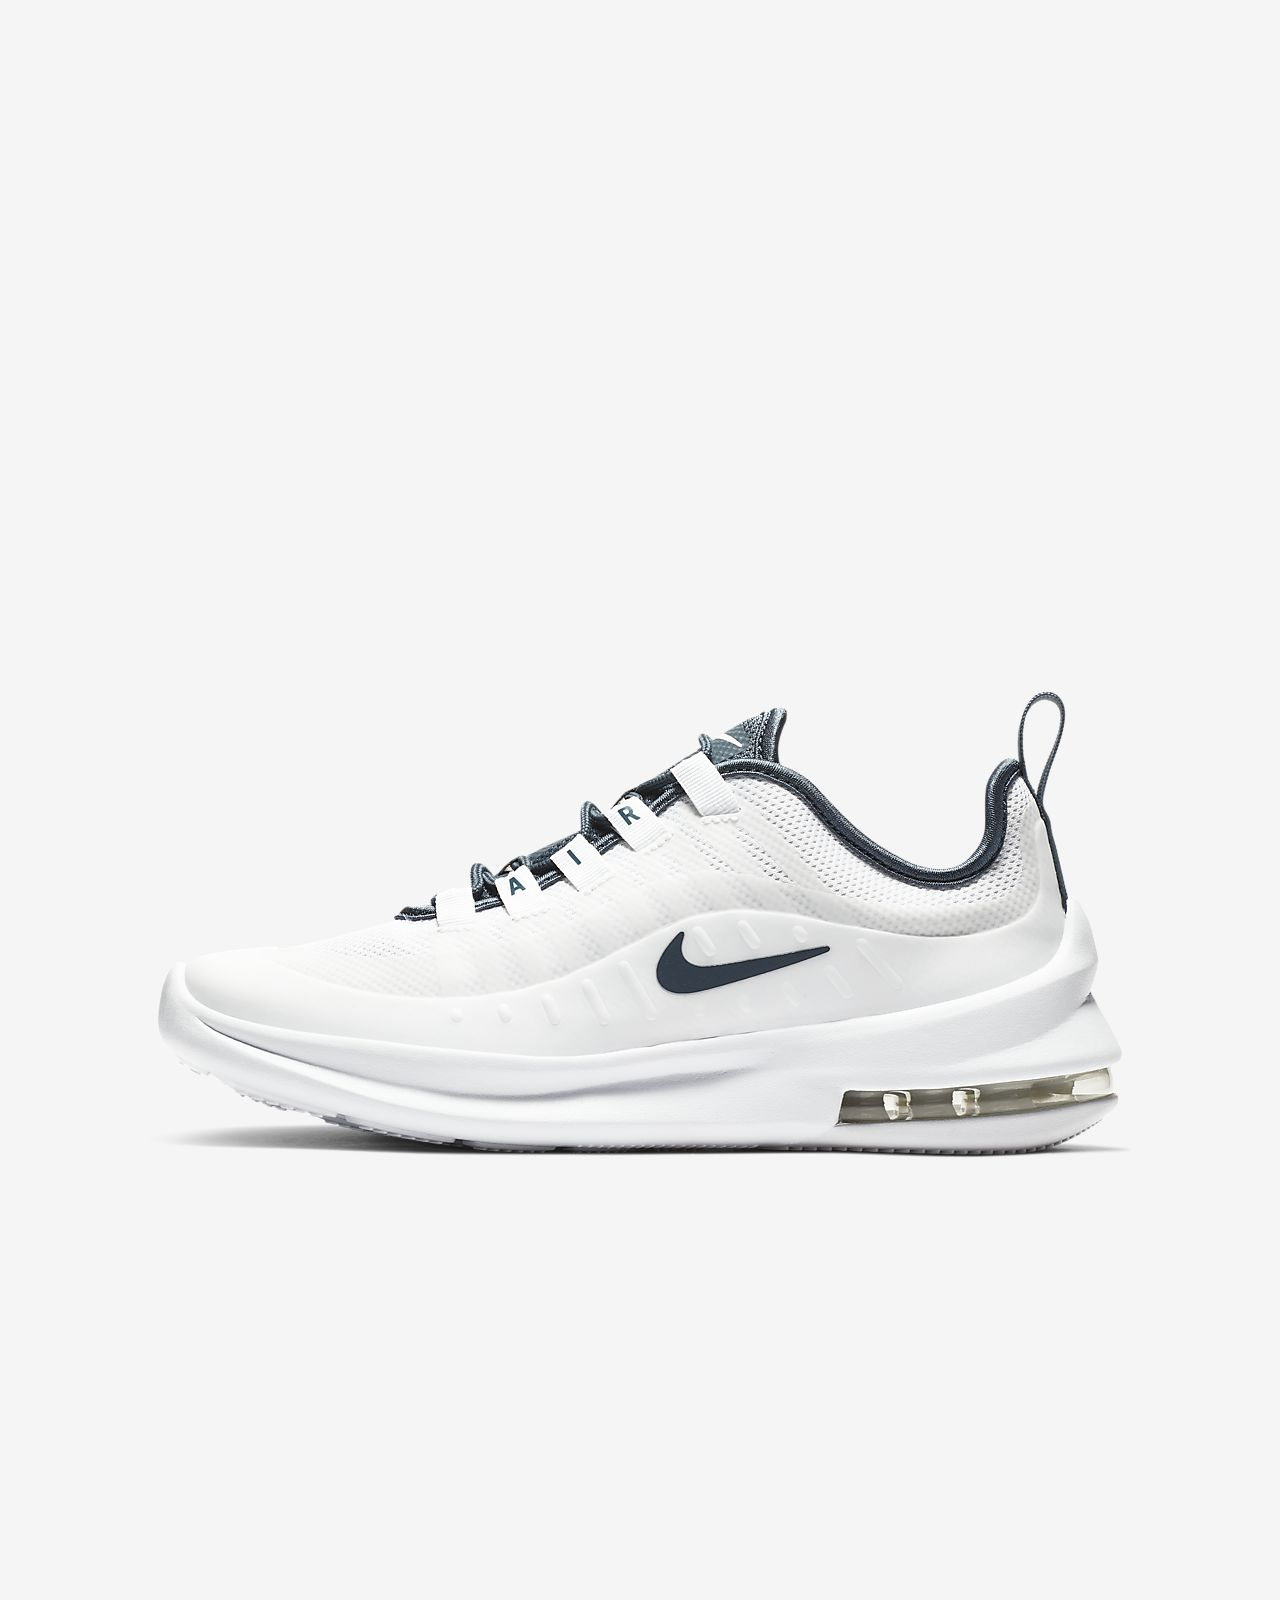 reputable site 978db a95be Tutto Nike Air Max Axis Ragazzo Prodotto. Scarpa Nike Air Max Axis  Scarpa  Nike Air Max Axis ...